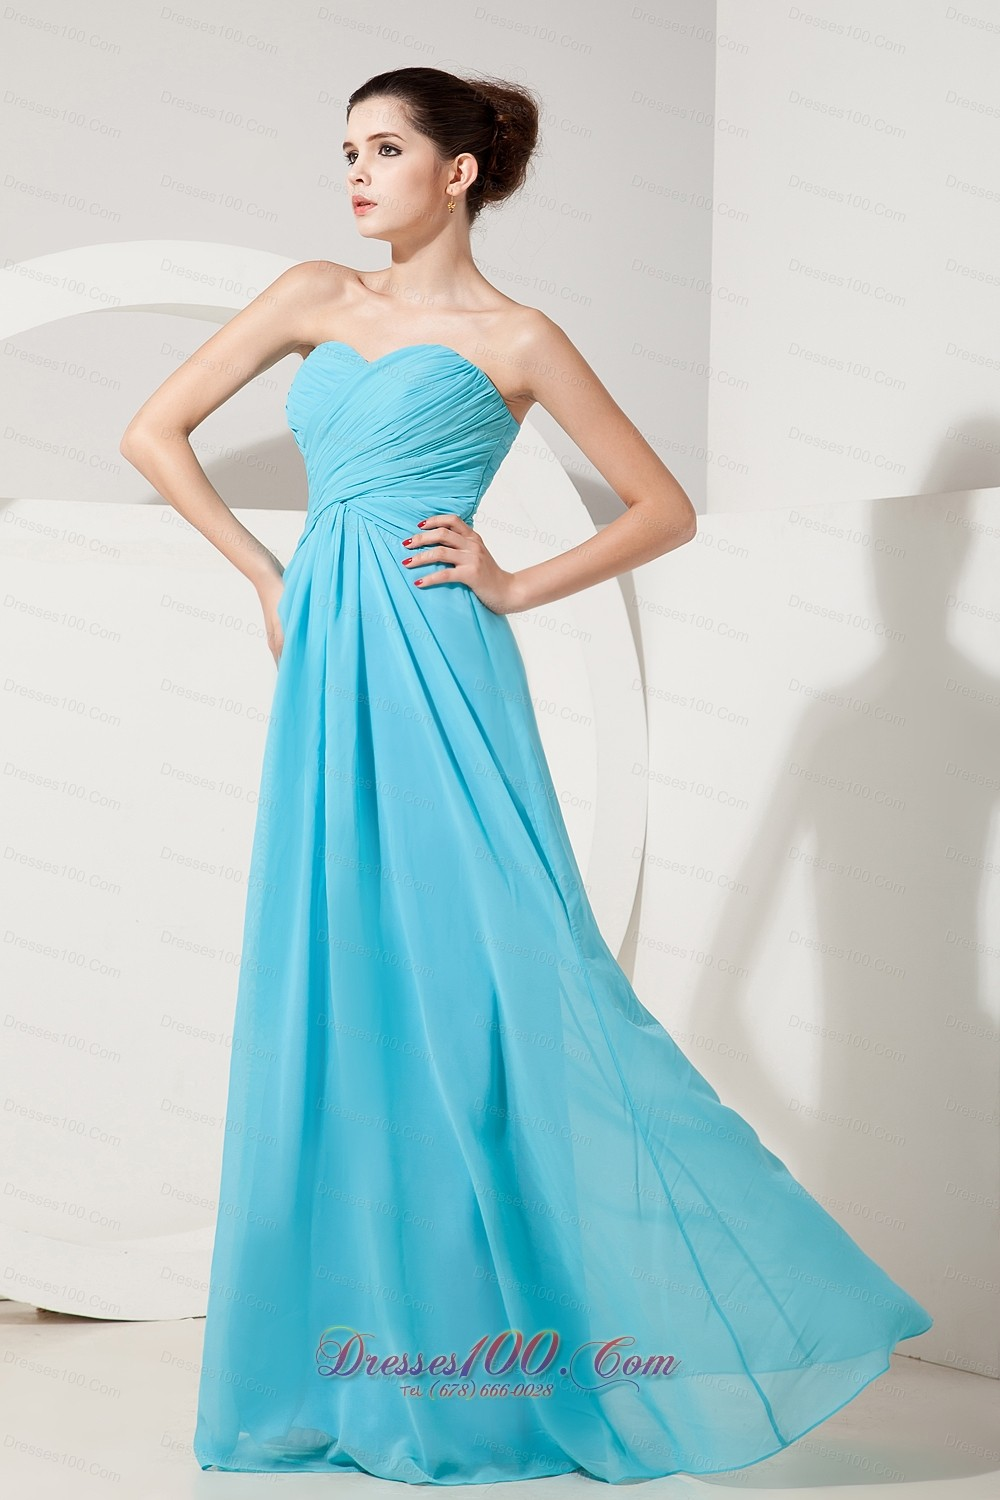 Aqua blue empire gather bridesmaid dress sweetheart ruch for Aqua blue dress for wedding